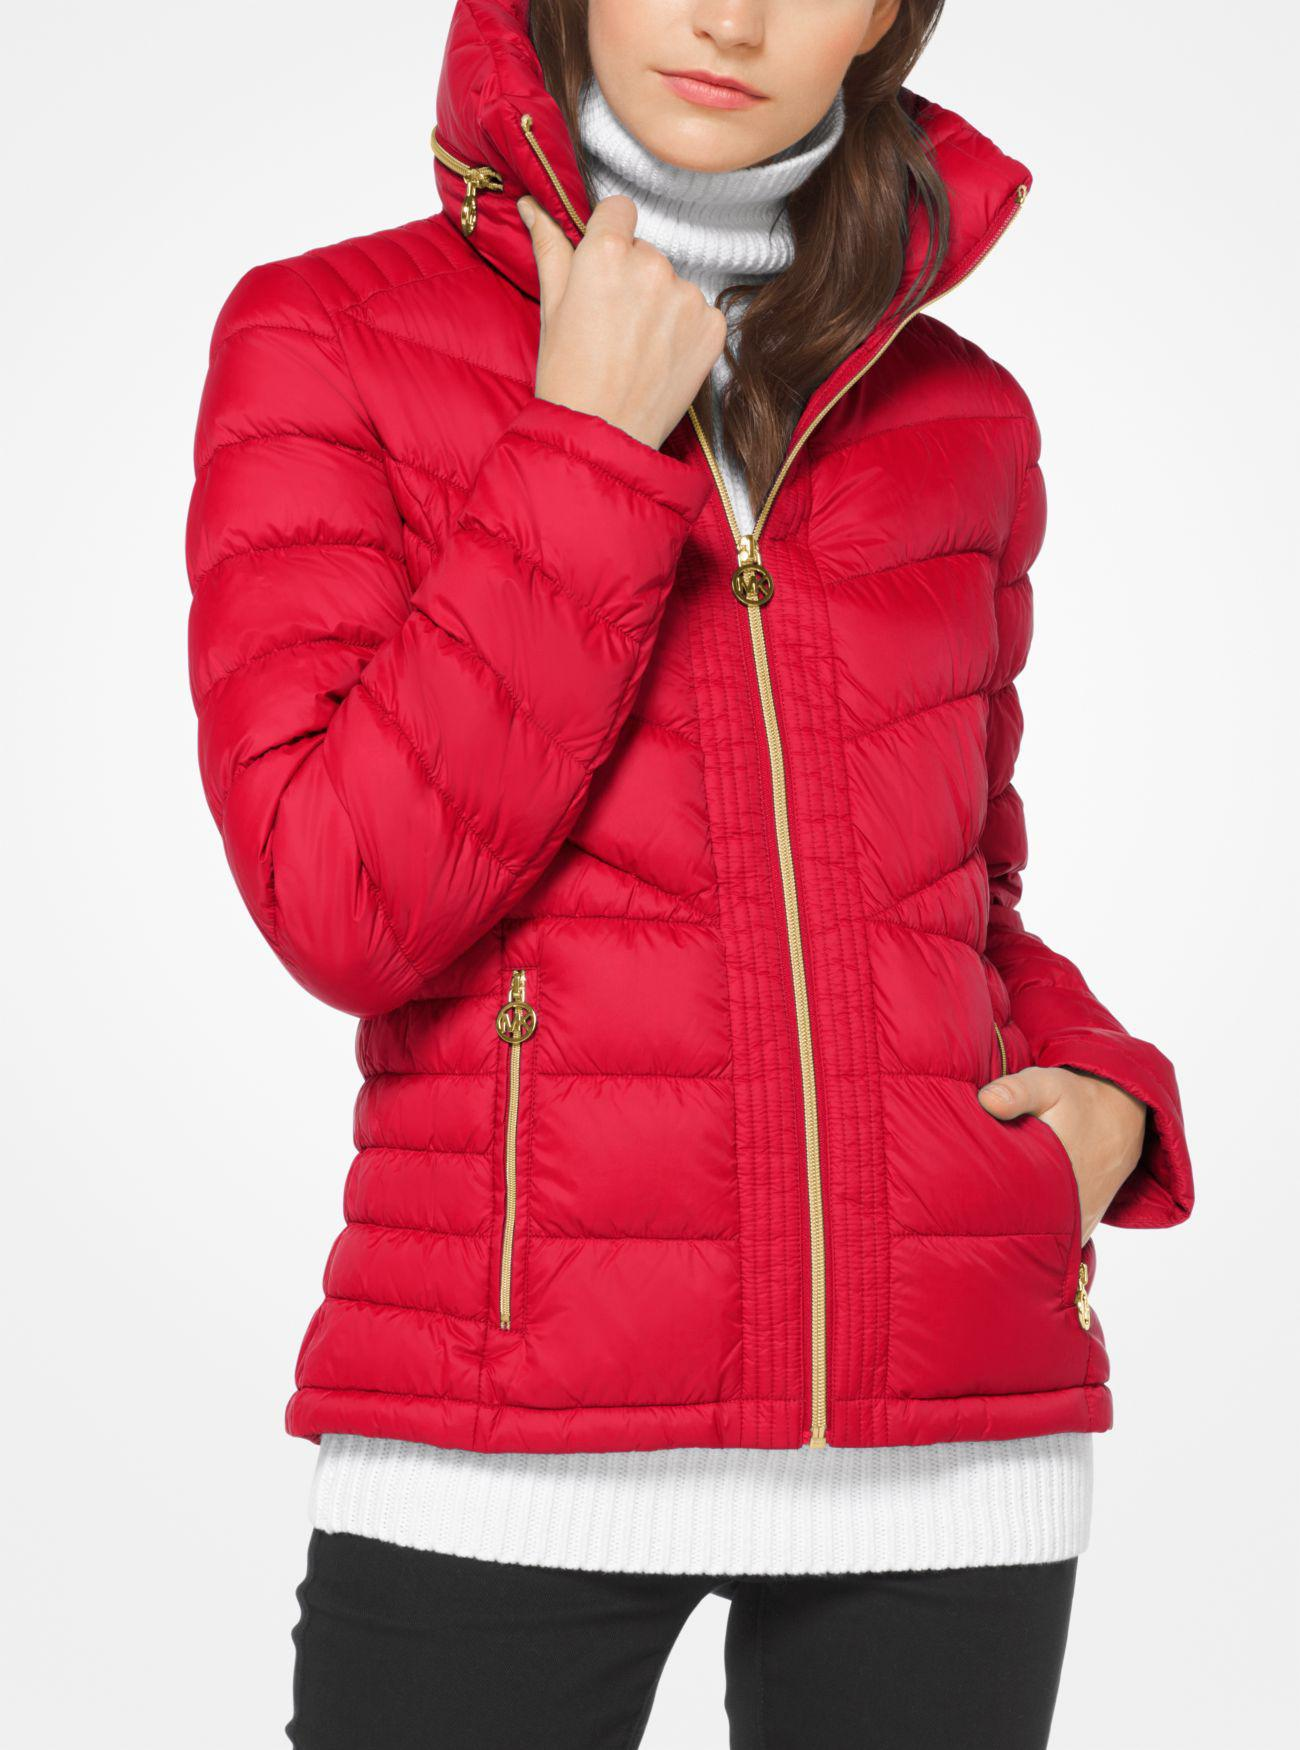 Michael Kors Synthetic Quilted Nylon Down Jacket In Red Lyst